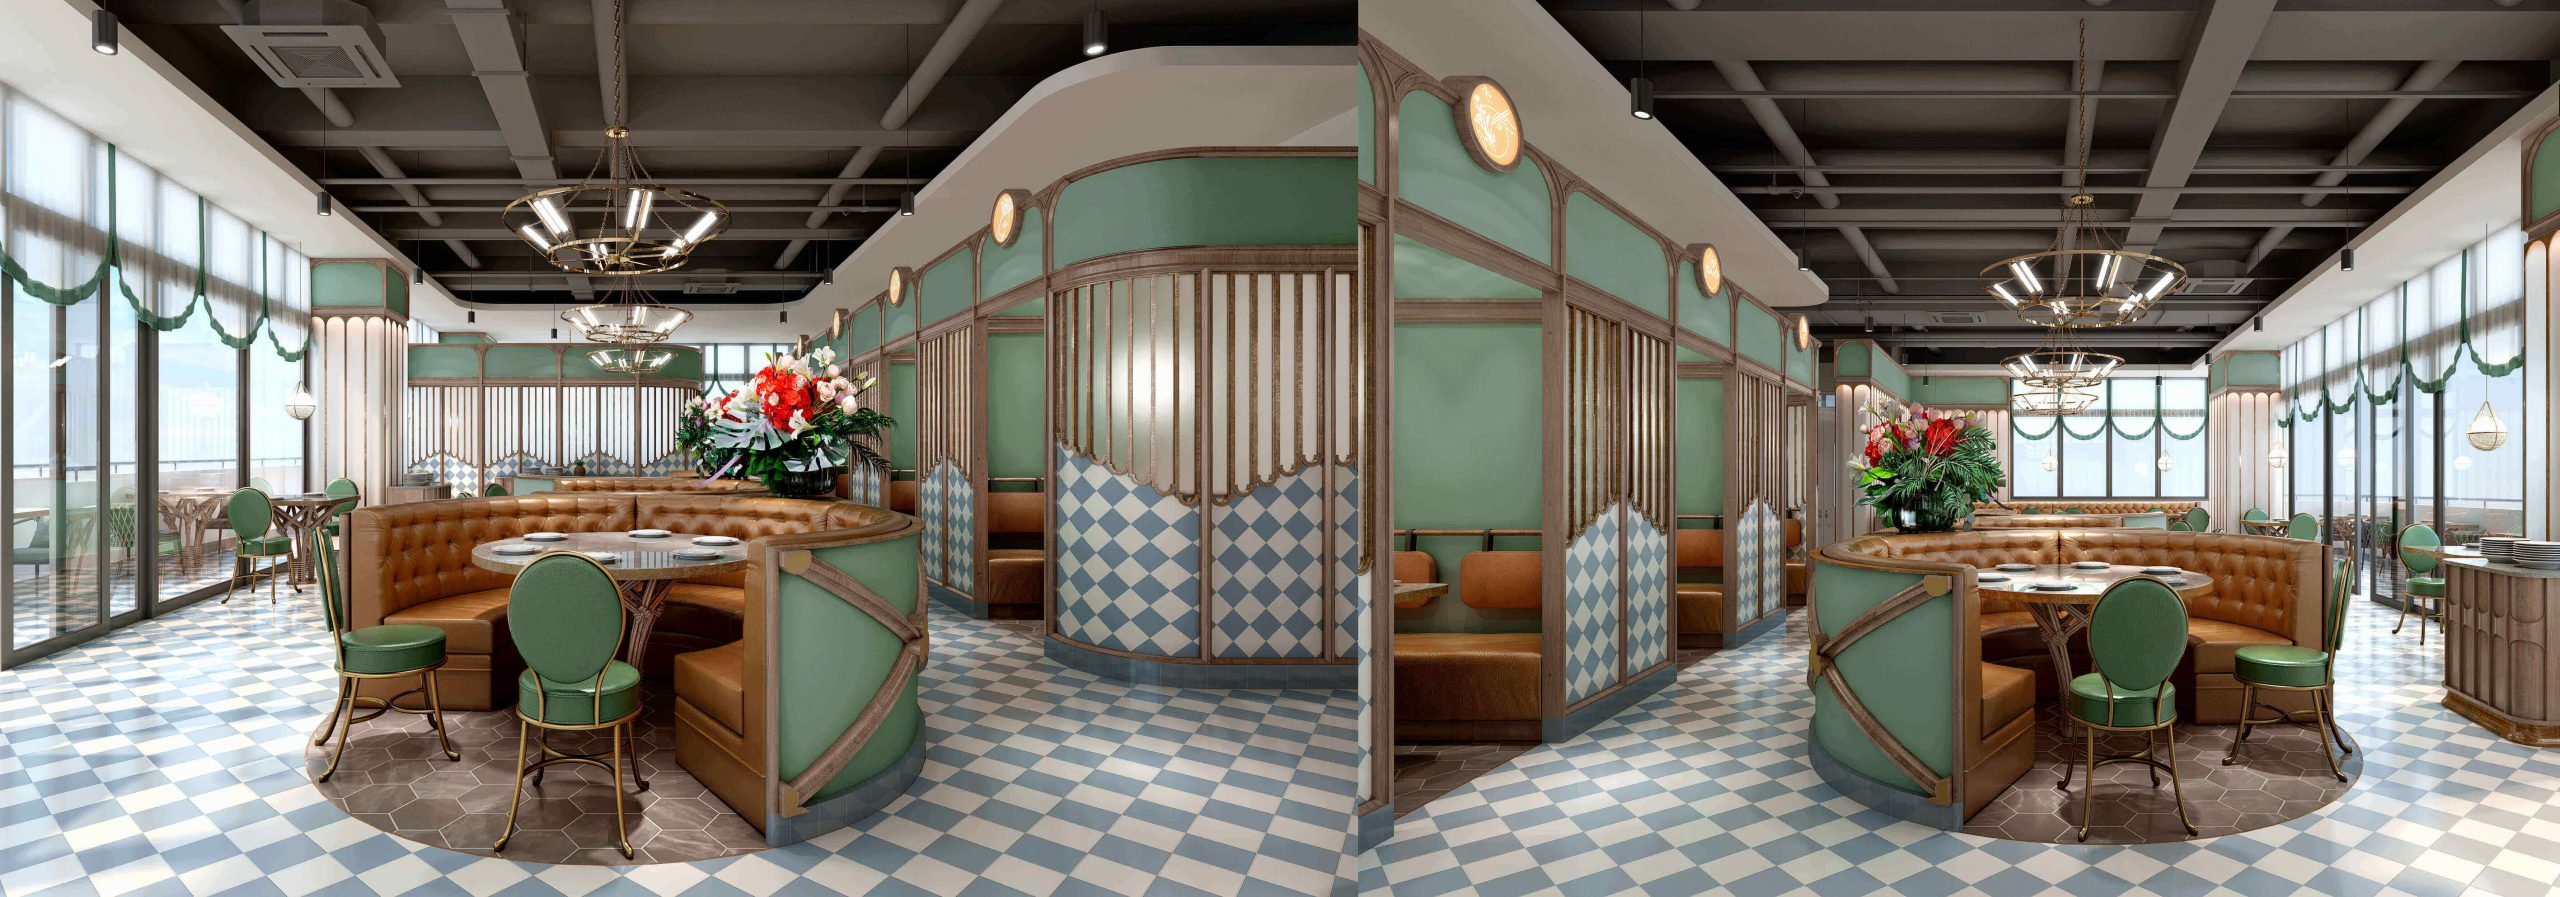 What should everyone know about European restaurant design